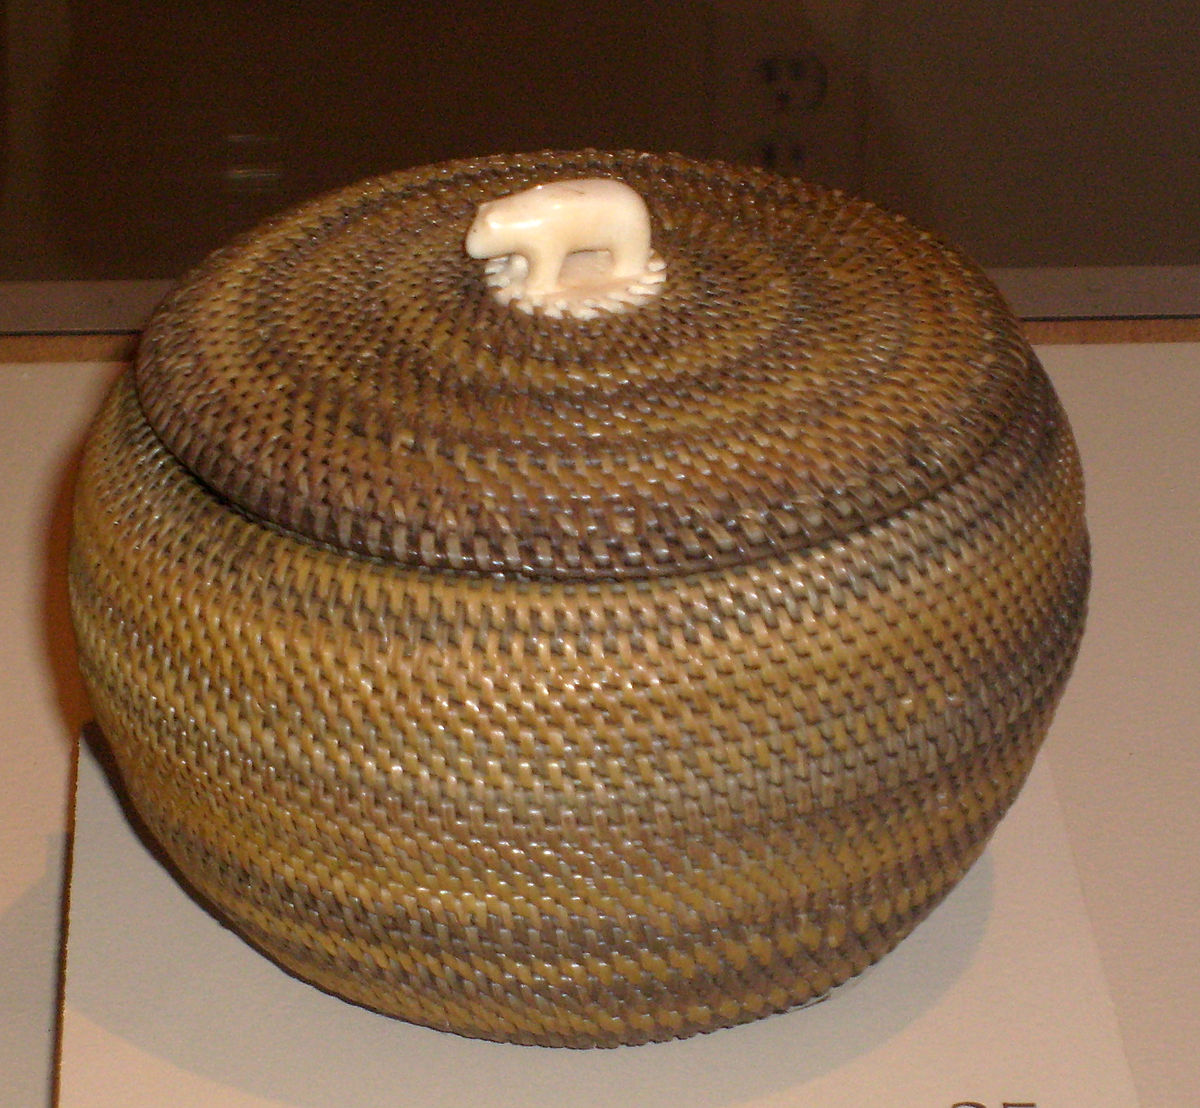 Basketry In Art : Baleen basketry wikipedia